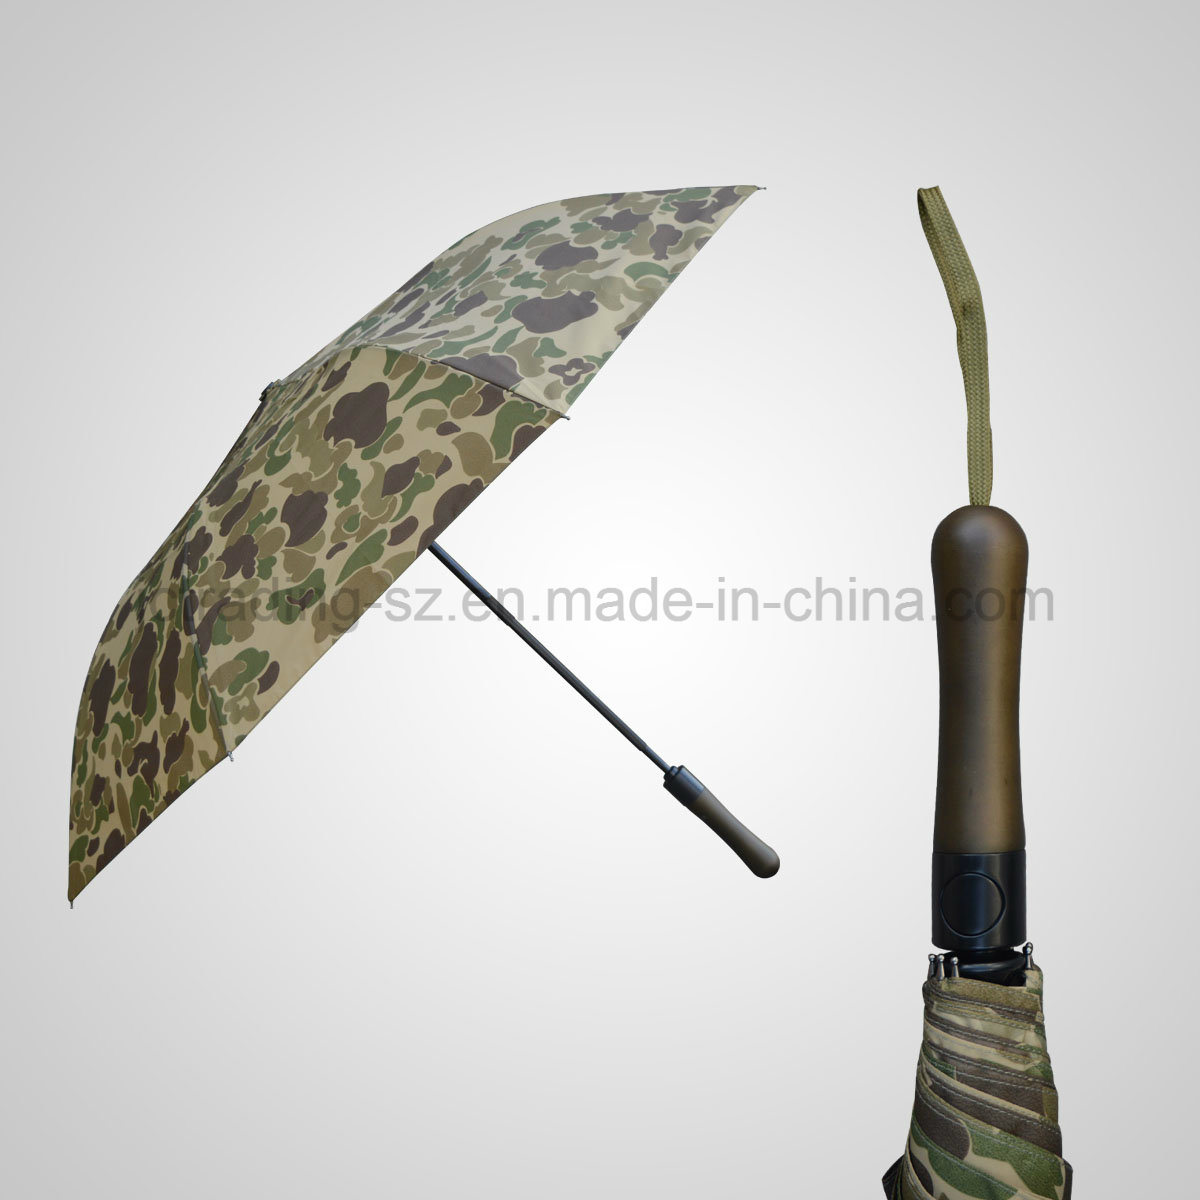 High Quality 2 Folding Automatic Open&Close Sun/Rain Umbrella (JF-AQT231)